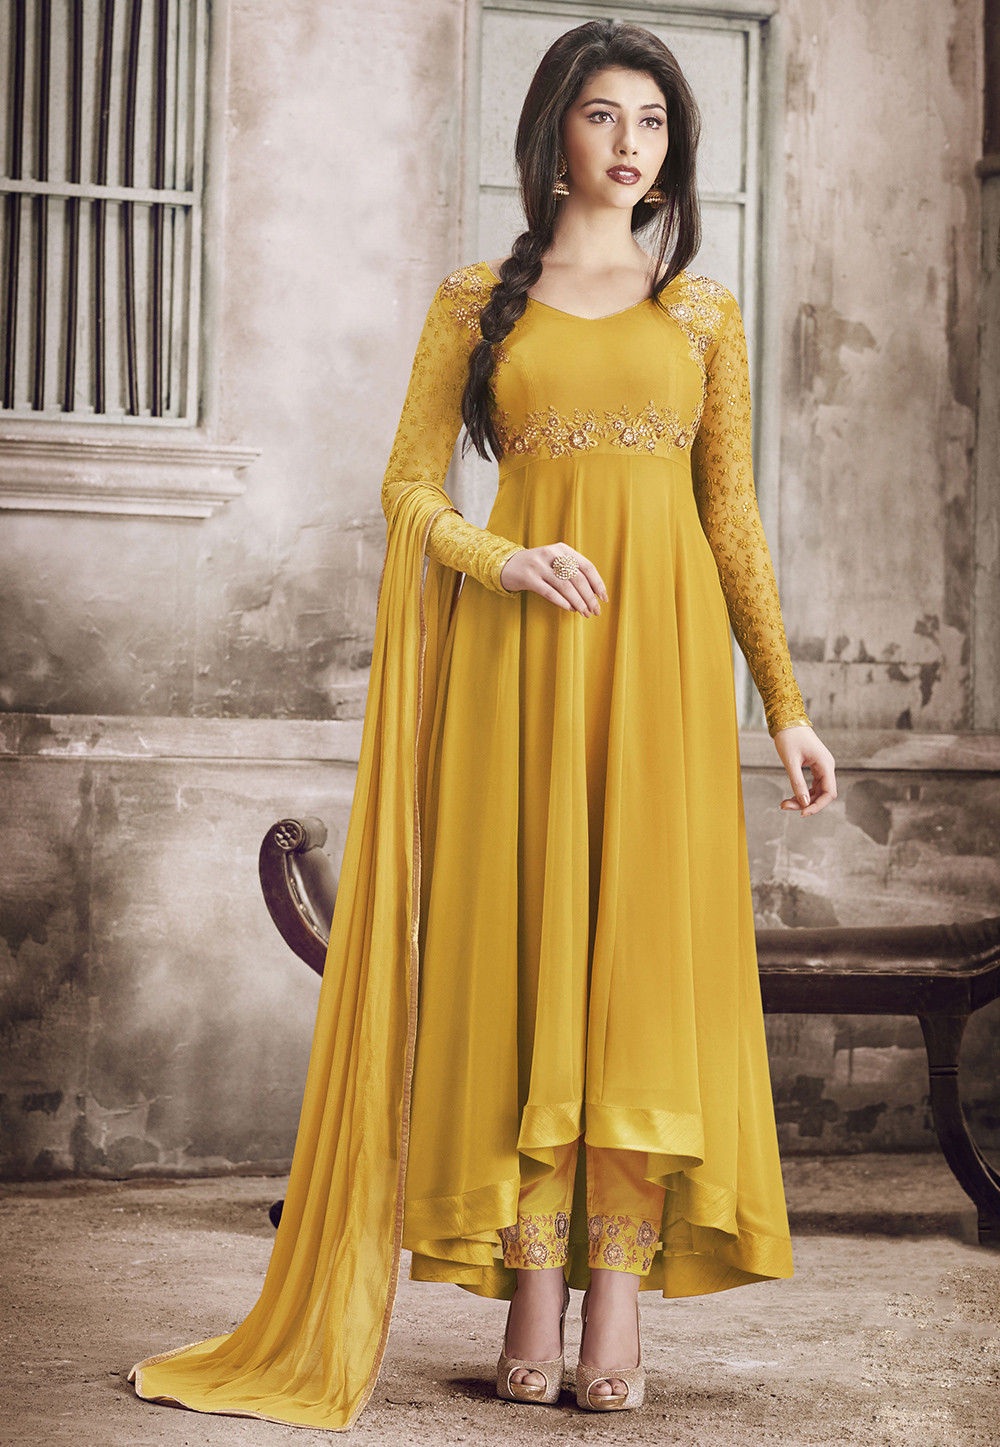 745b83c73a Party Wear Suits: Buy Party Wear Salwar Suits for Women Online ...